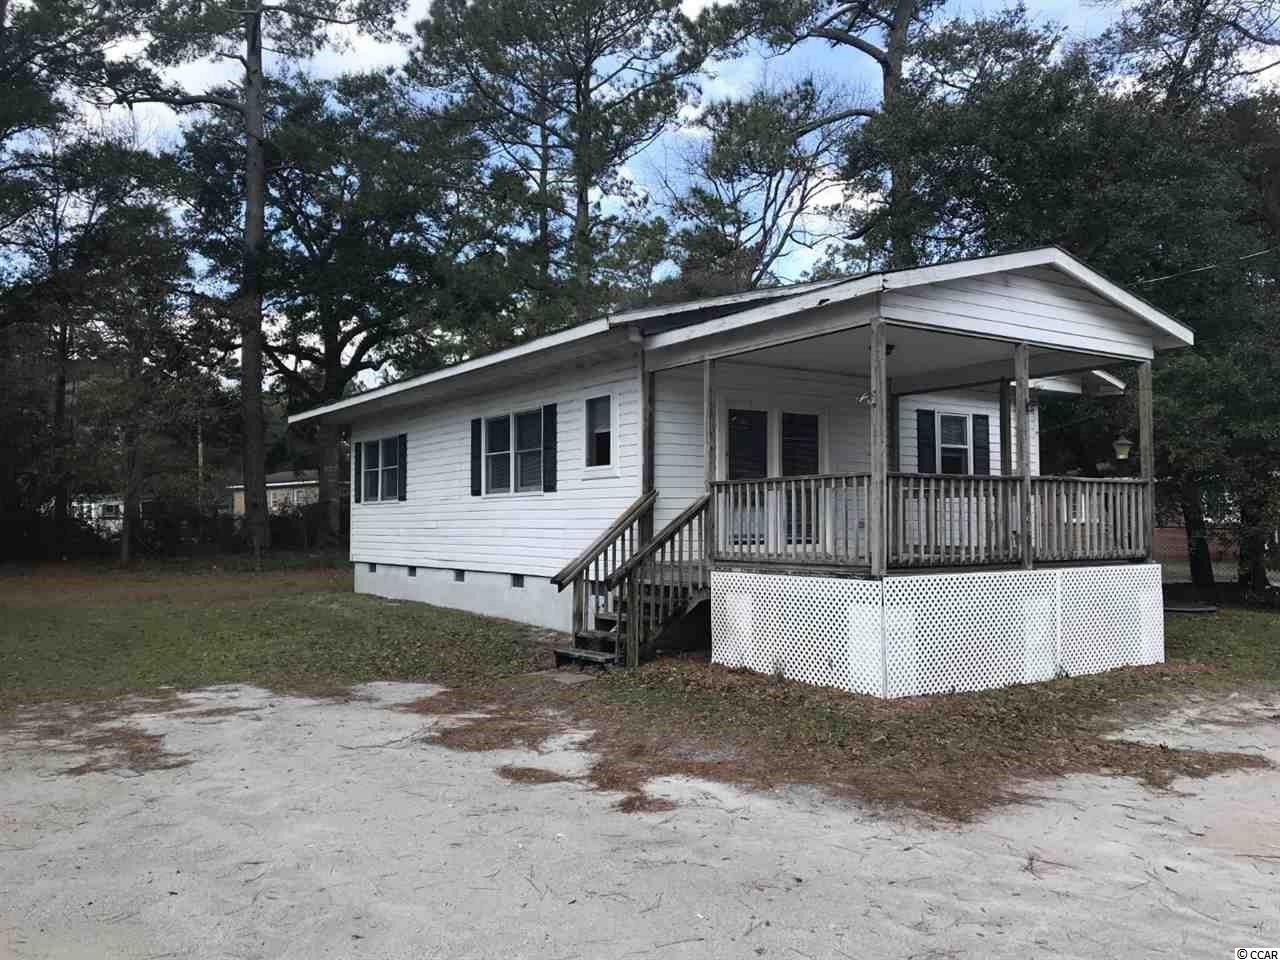 2 bedroom 1 bath home in heart of Little River with no HOA! Great investment property or starter home. Close to all the area has to offer shopping, dining, golf, the beaches and more!